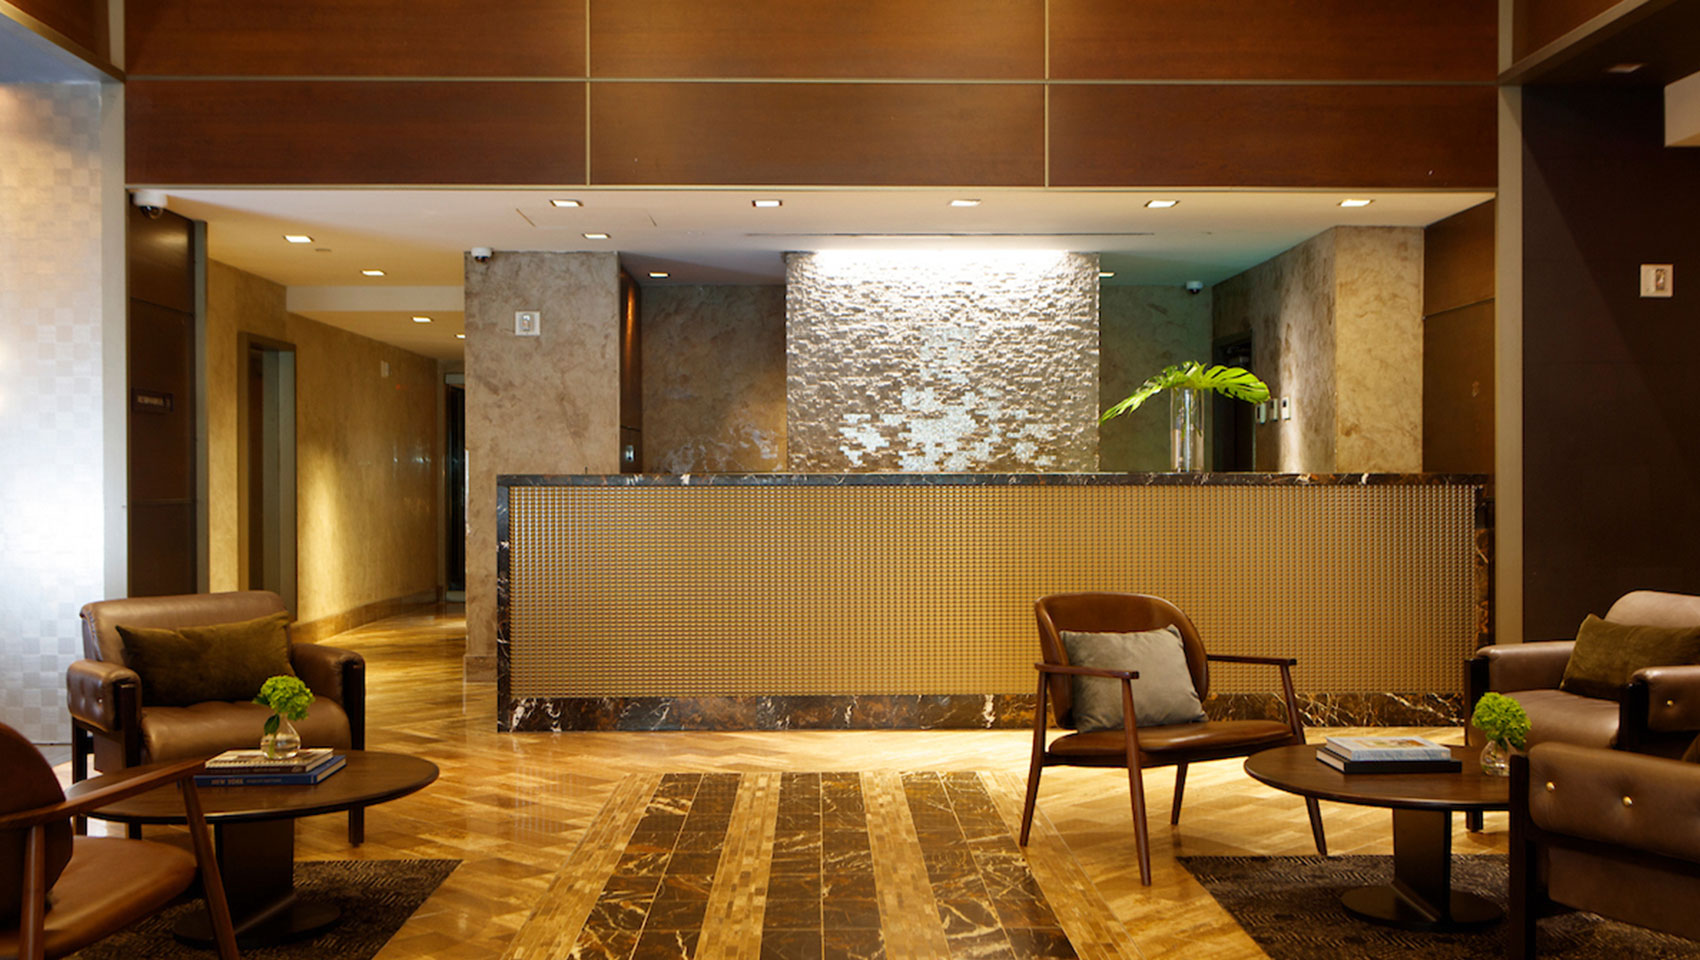 Kimpton Muse Hotel lobby with front desk and adjacent seating areas